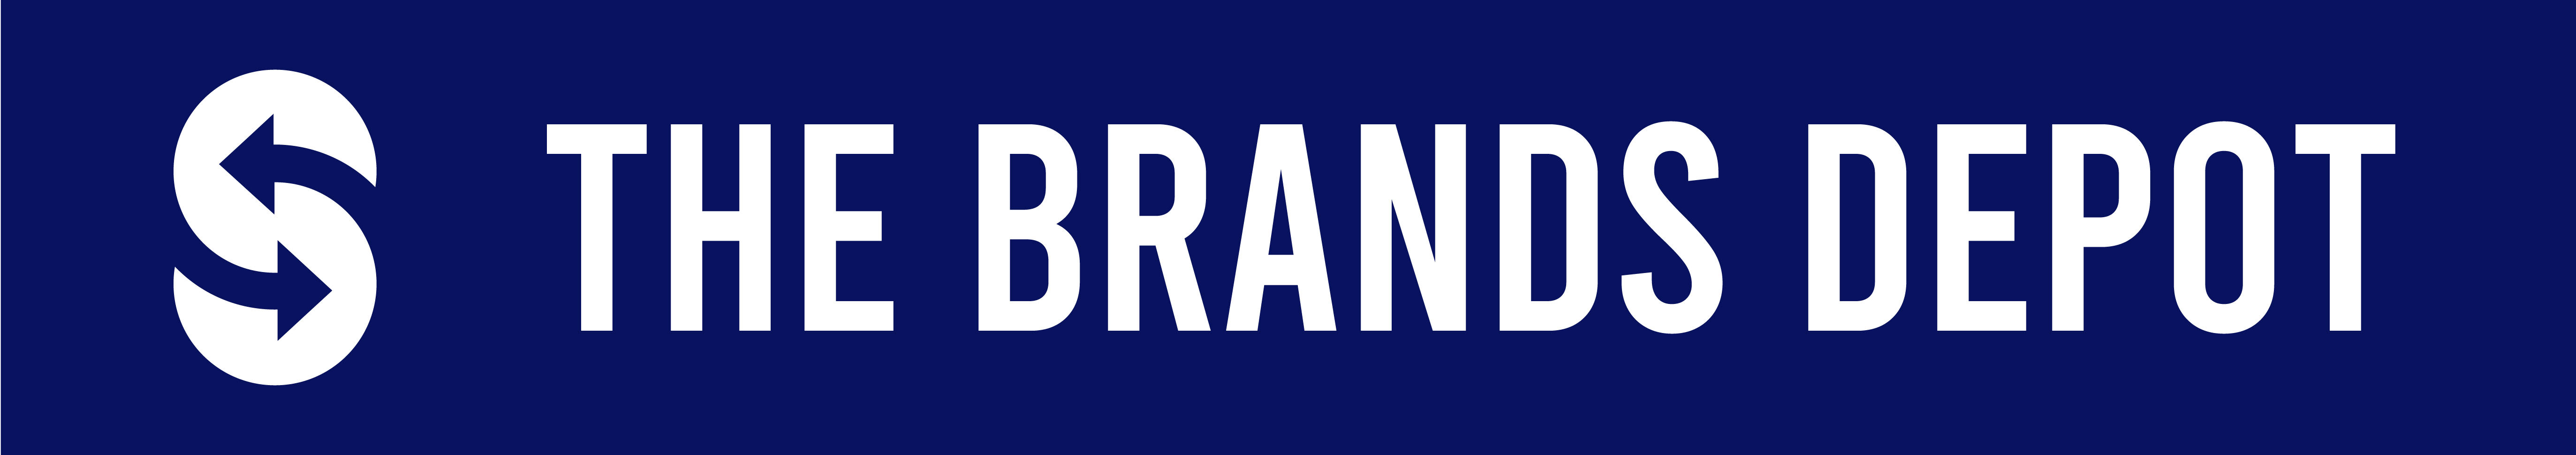 The Brands Depot Logo